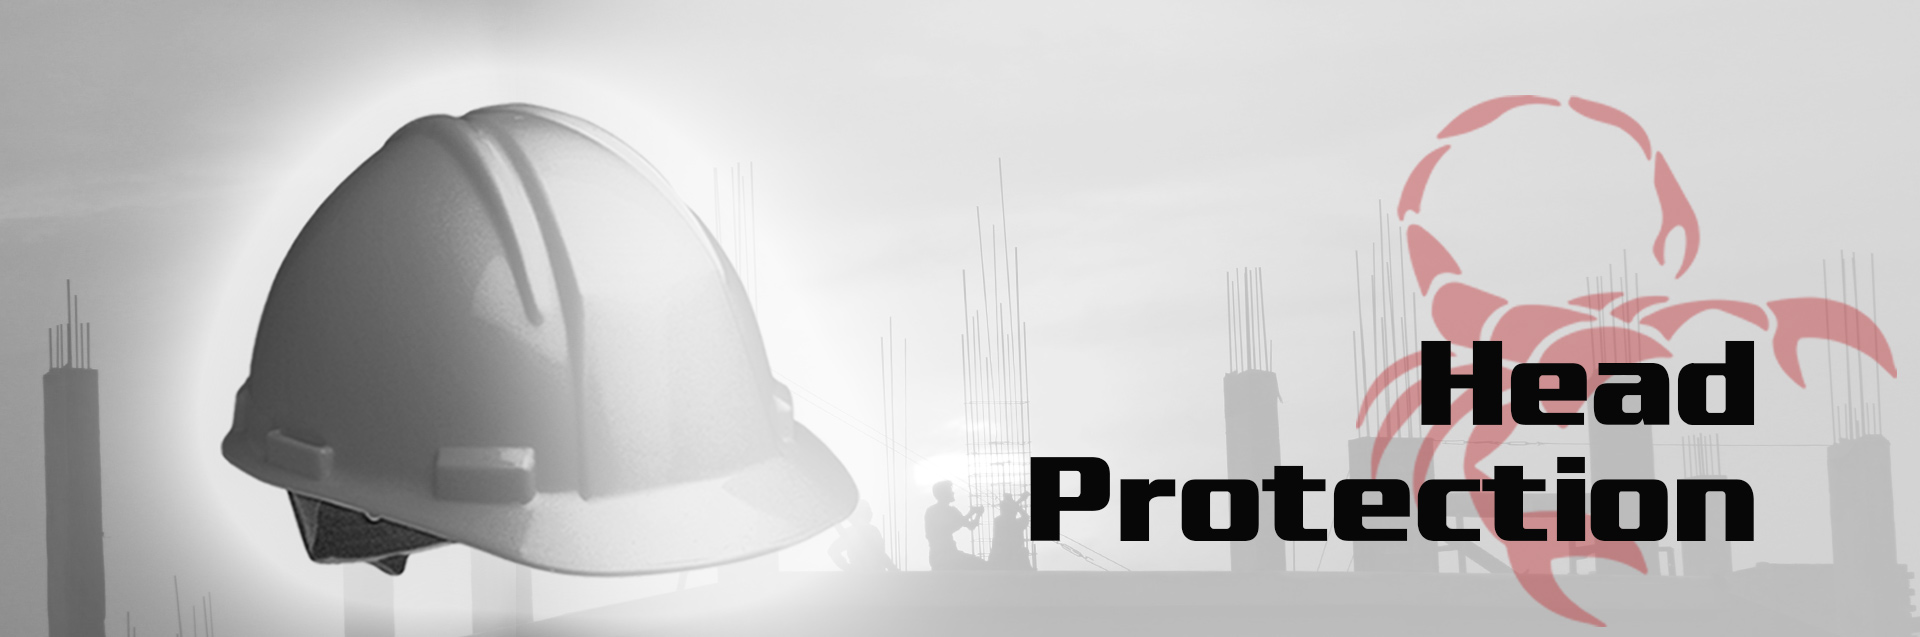 Head Protection Banner